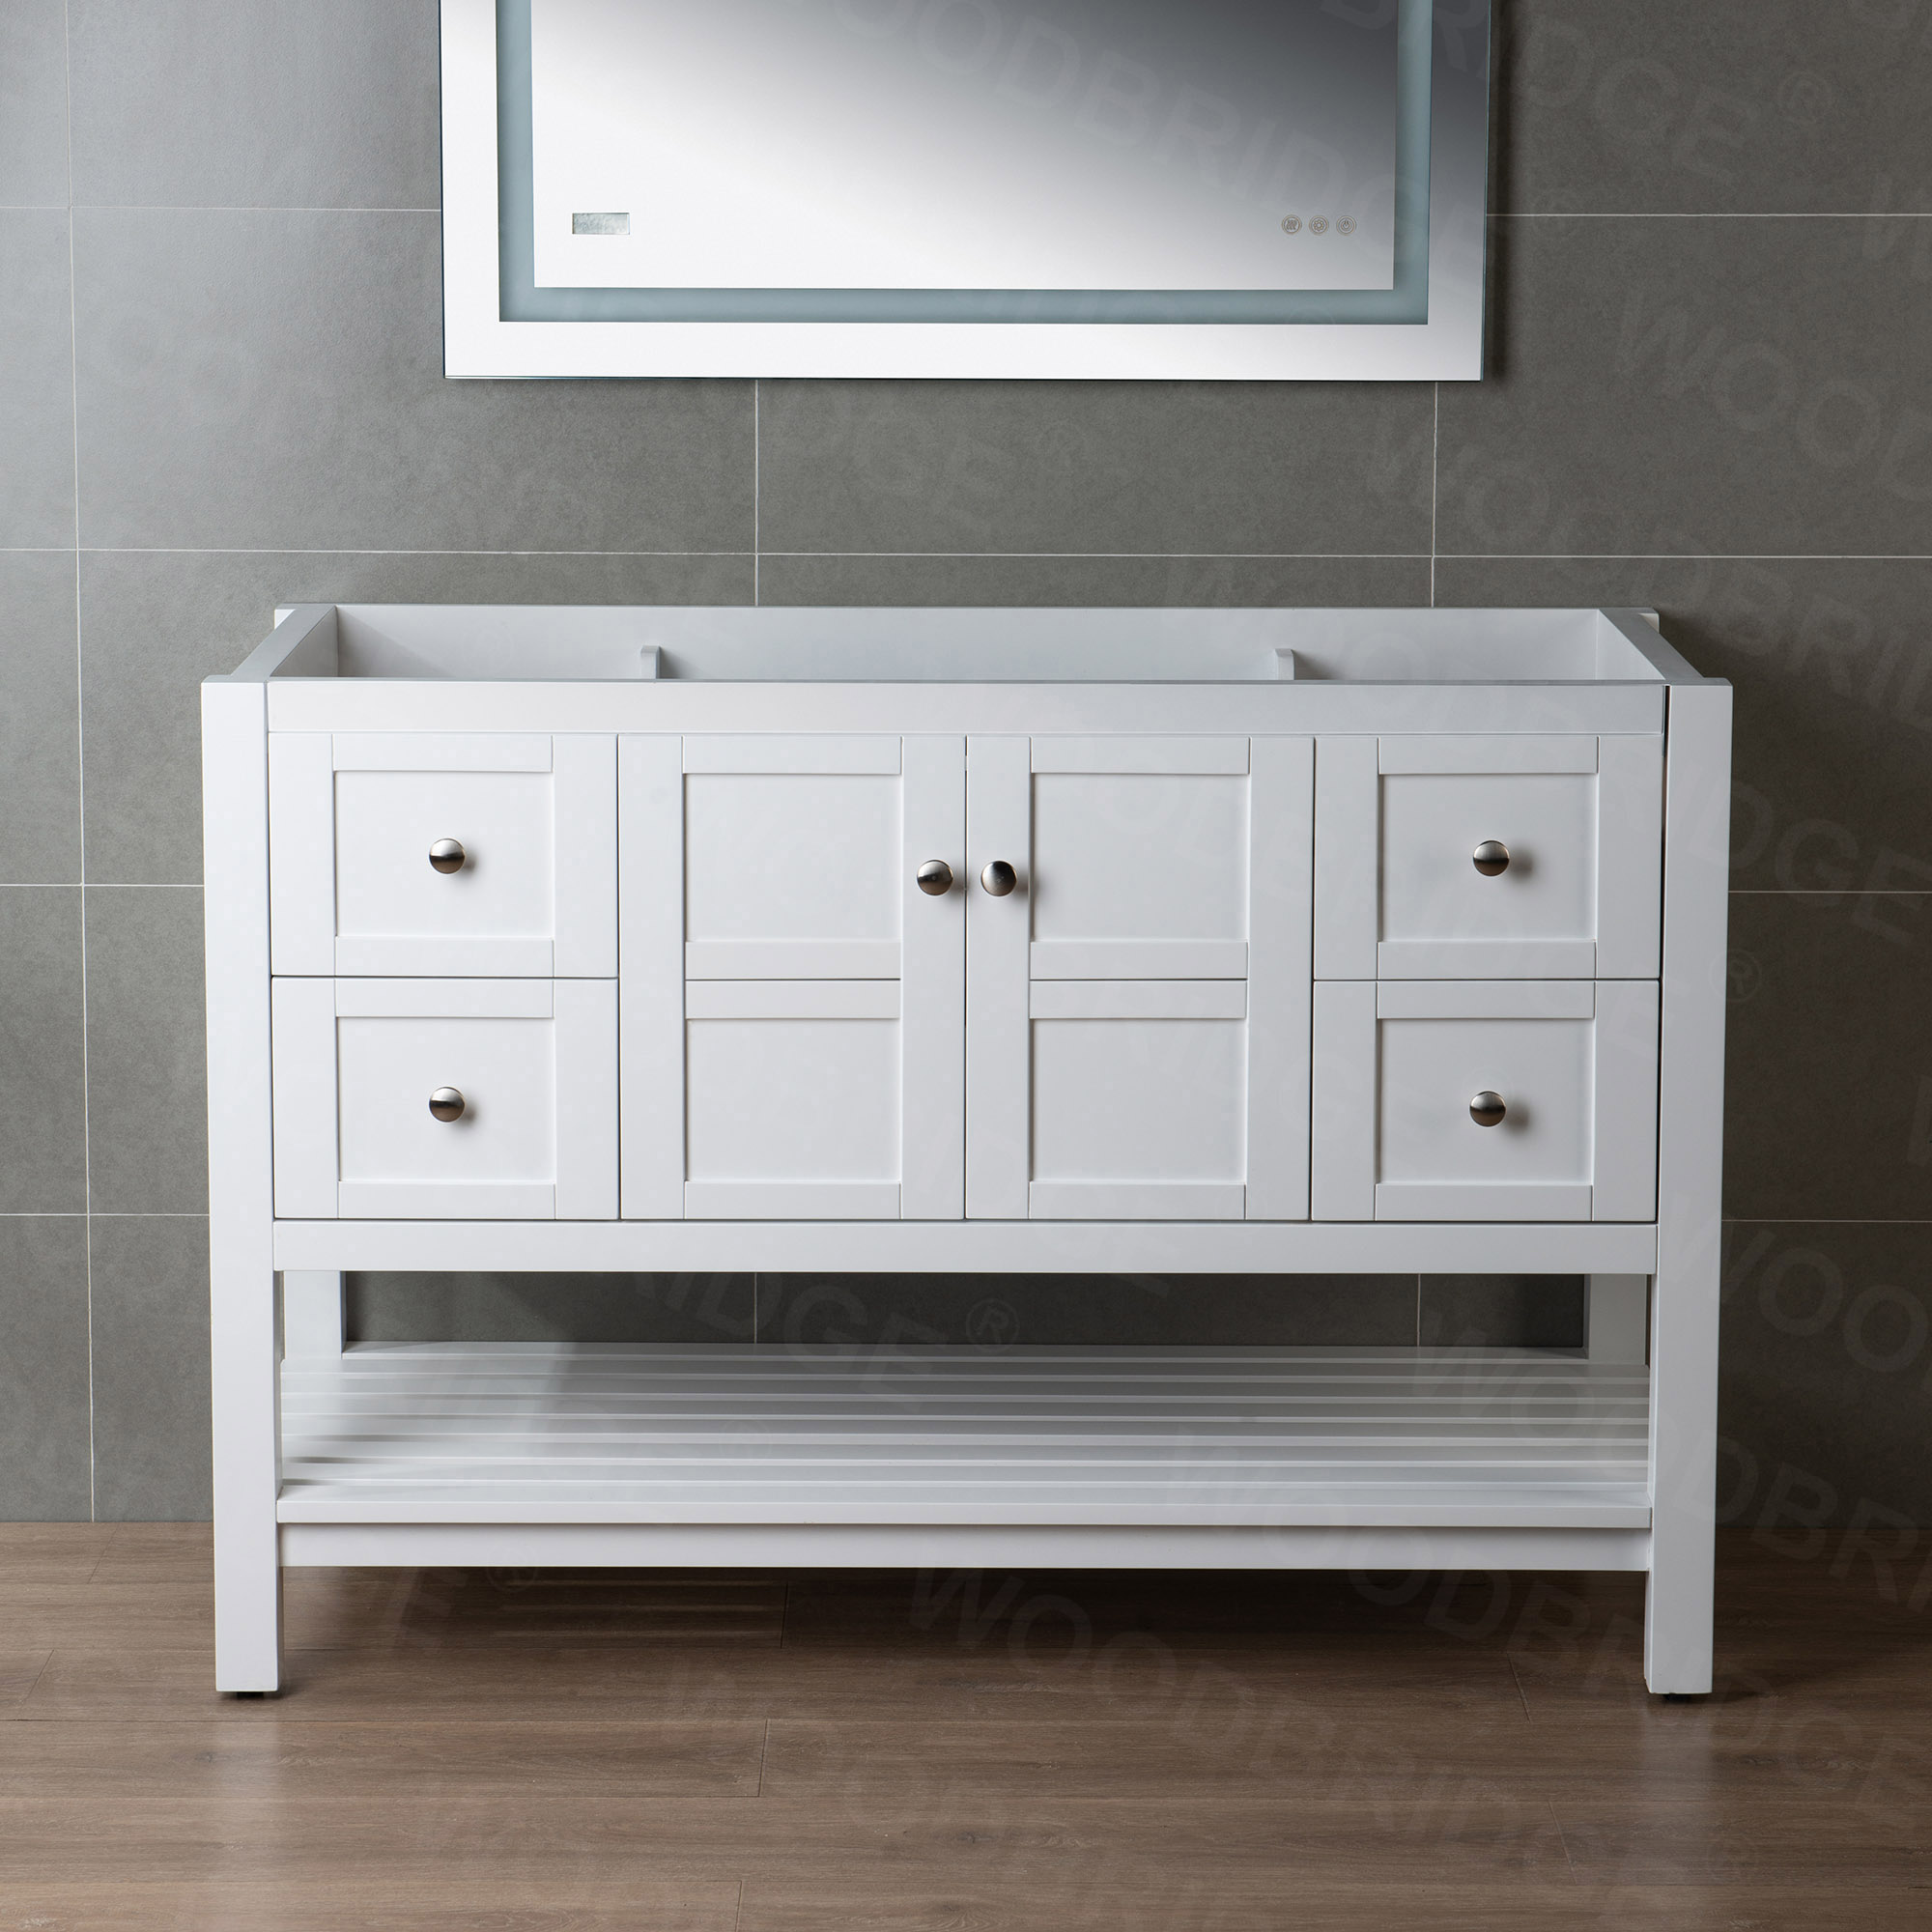 ᐅ Sydney 48 Inch Solid Wood Bathroom Vanity Base Only 2 Soft Closing Doors And 4 Full Extension Solid Wood Dovetail Drawers White Vanity Color Woodbridge